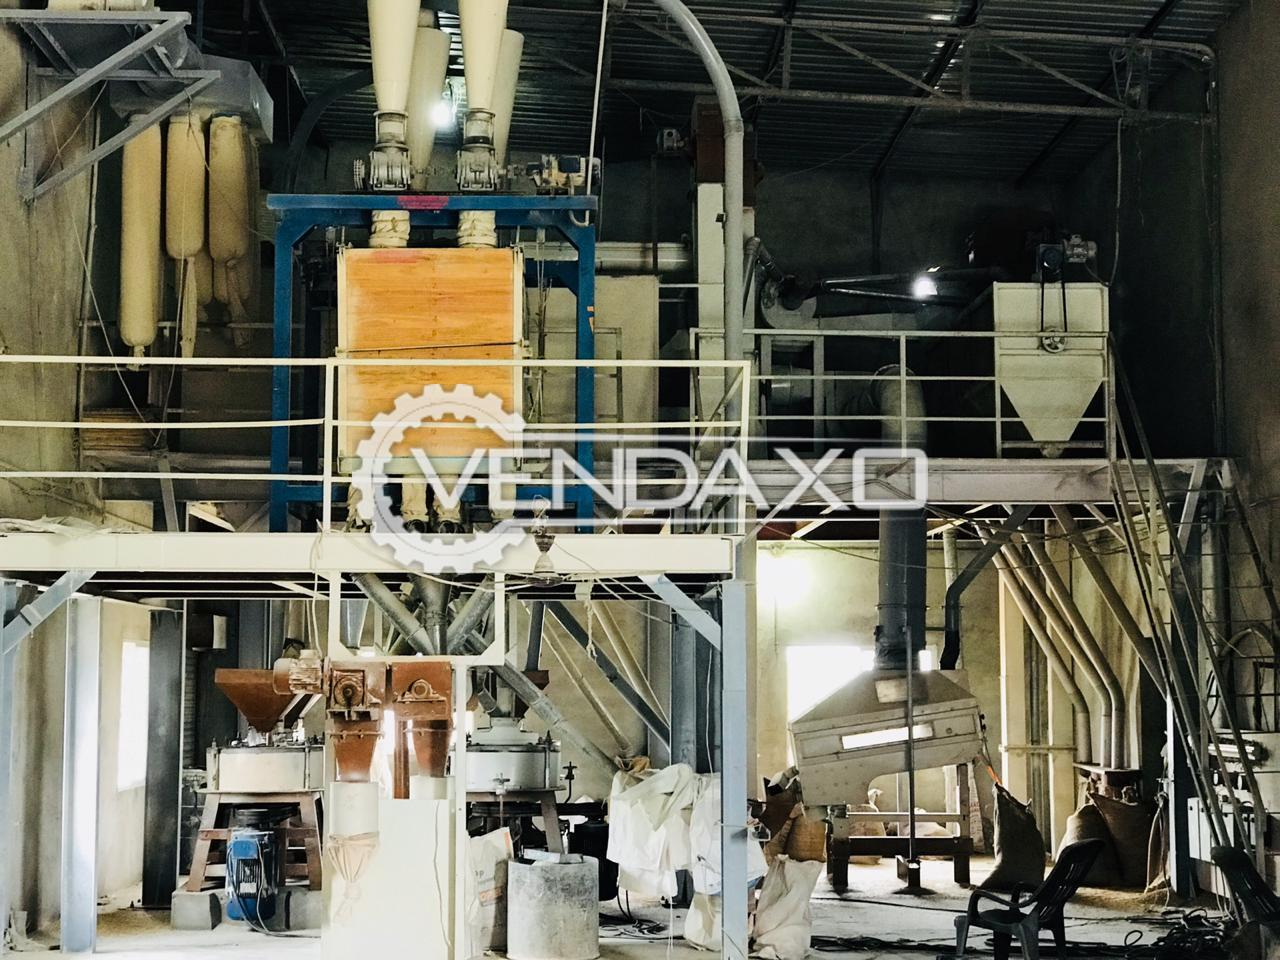 Floor Mill Machinery - 900 to 1000 Kg Per Hour